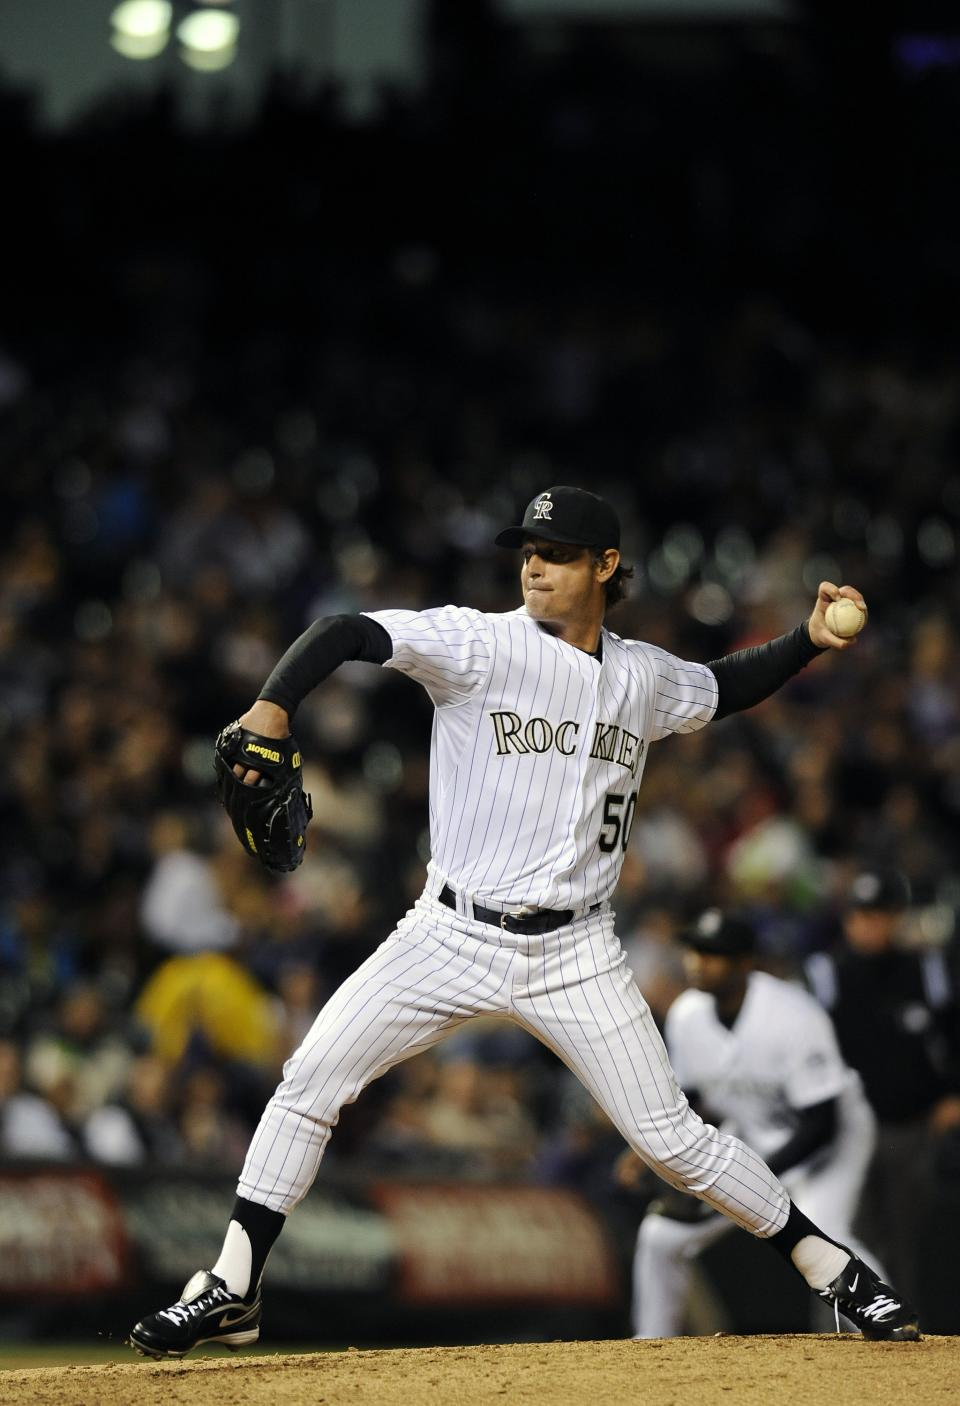 Colorado Rockies starting pitcher Jamie Moyer throws in the sixth inning of a baseball game against the San Diego Padres on Tuesday, April 17, 2012 in Denver. The Rockies won 5-3. Jamie Moyer became the oldest pitcher to win a major league game.(AP Photo/Chris Schneider)